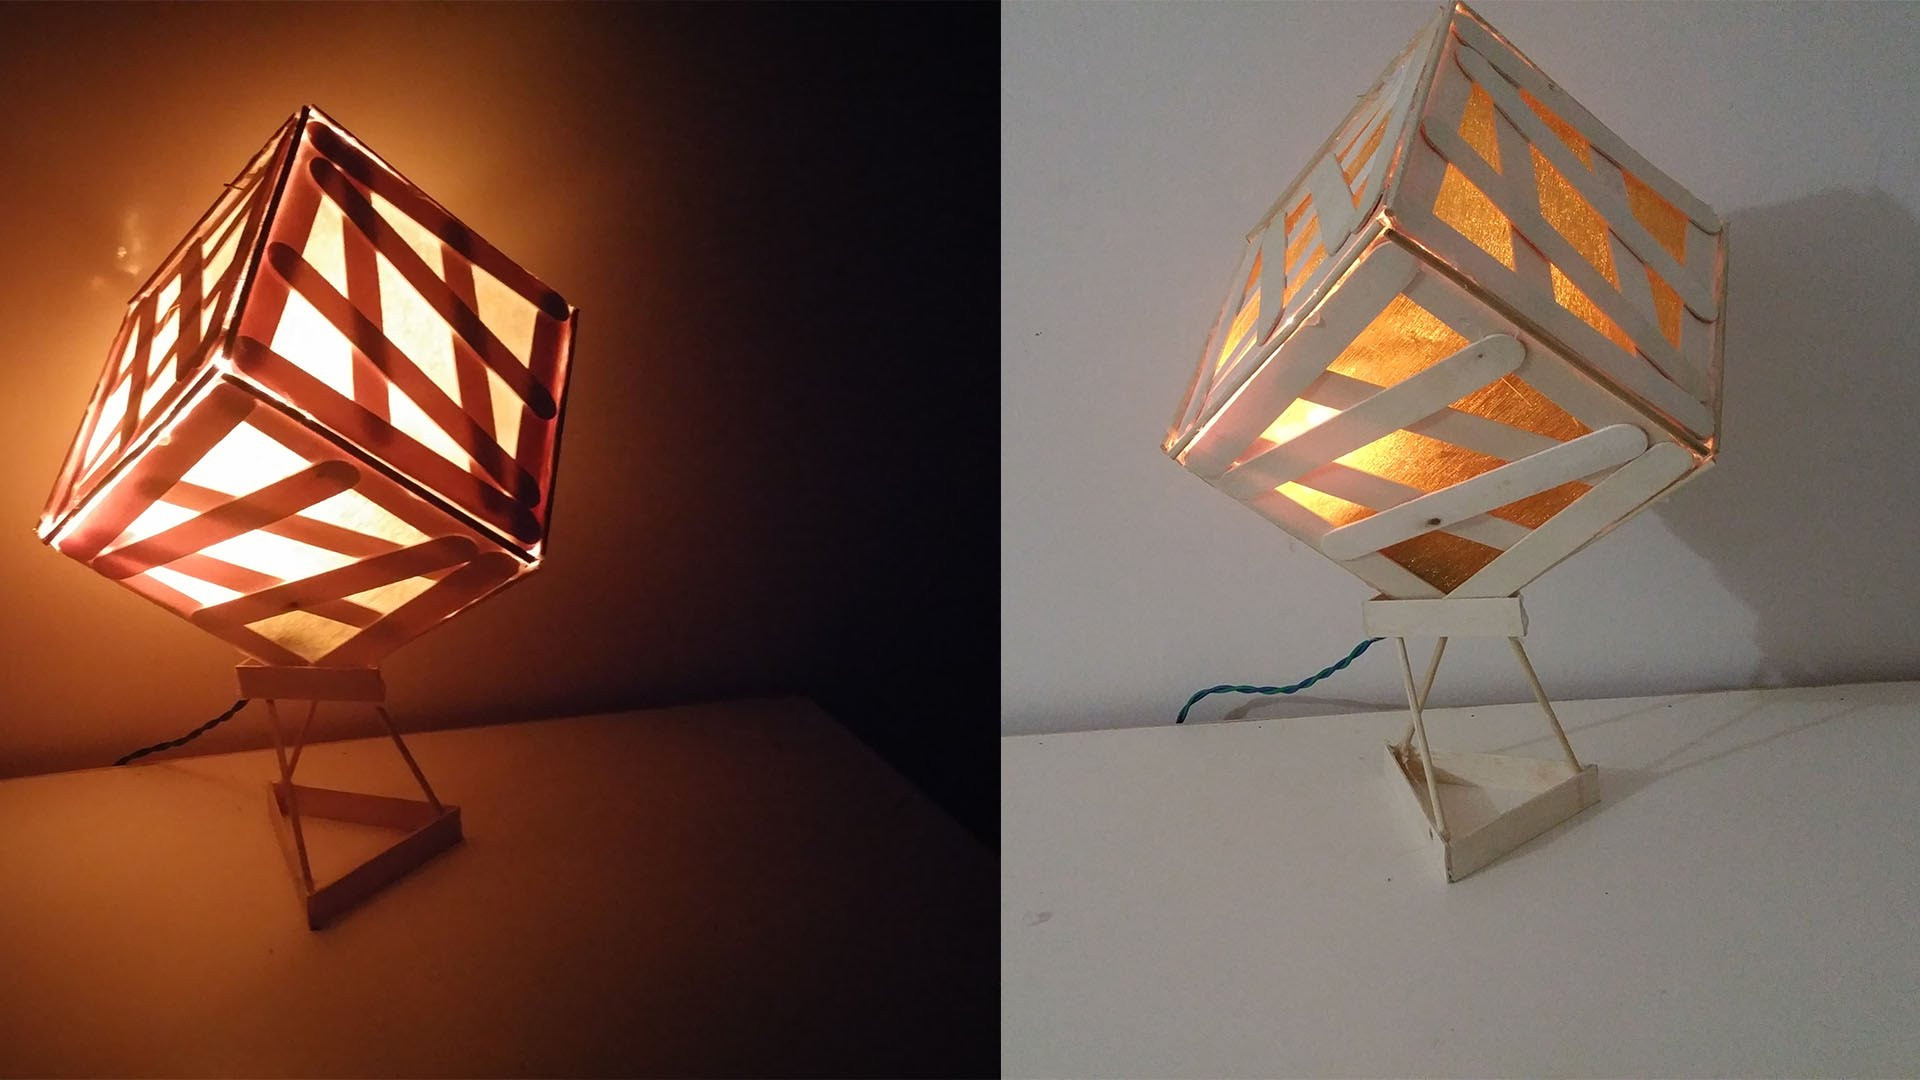 Best ideas about DIY Table Lamps . Save or Pin 10 Benefits of using Diy table lamps Now.